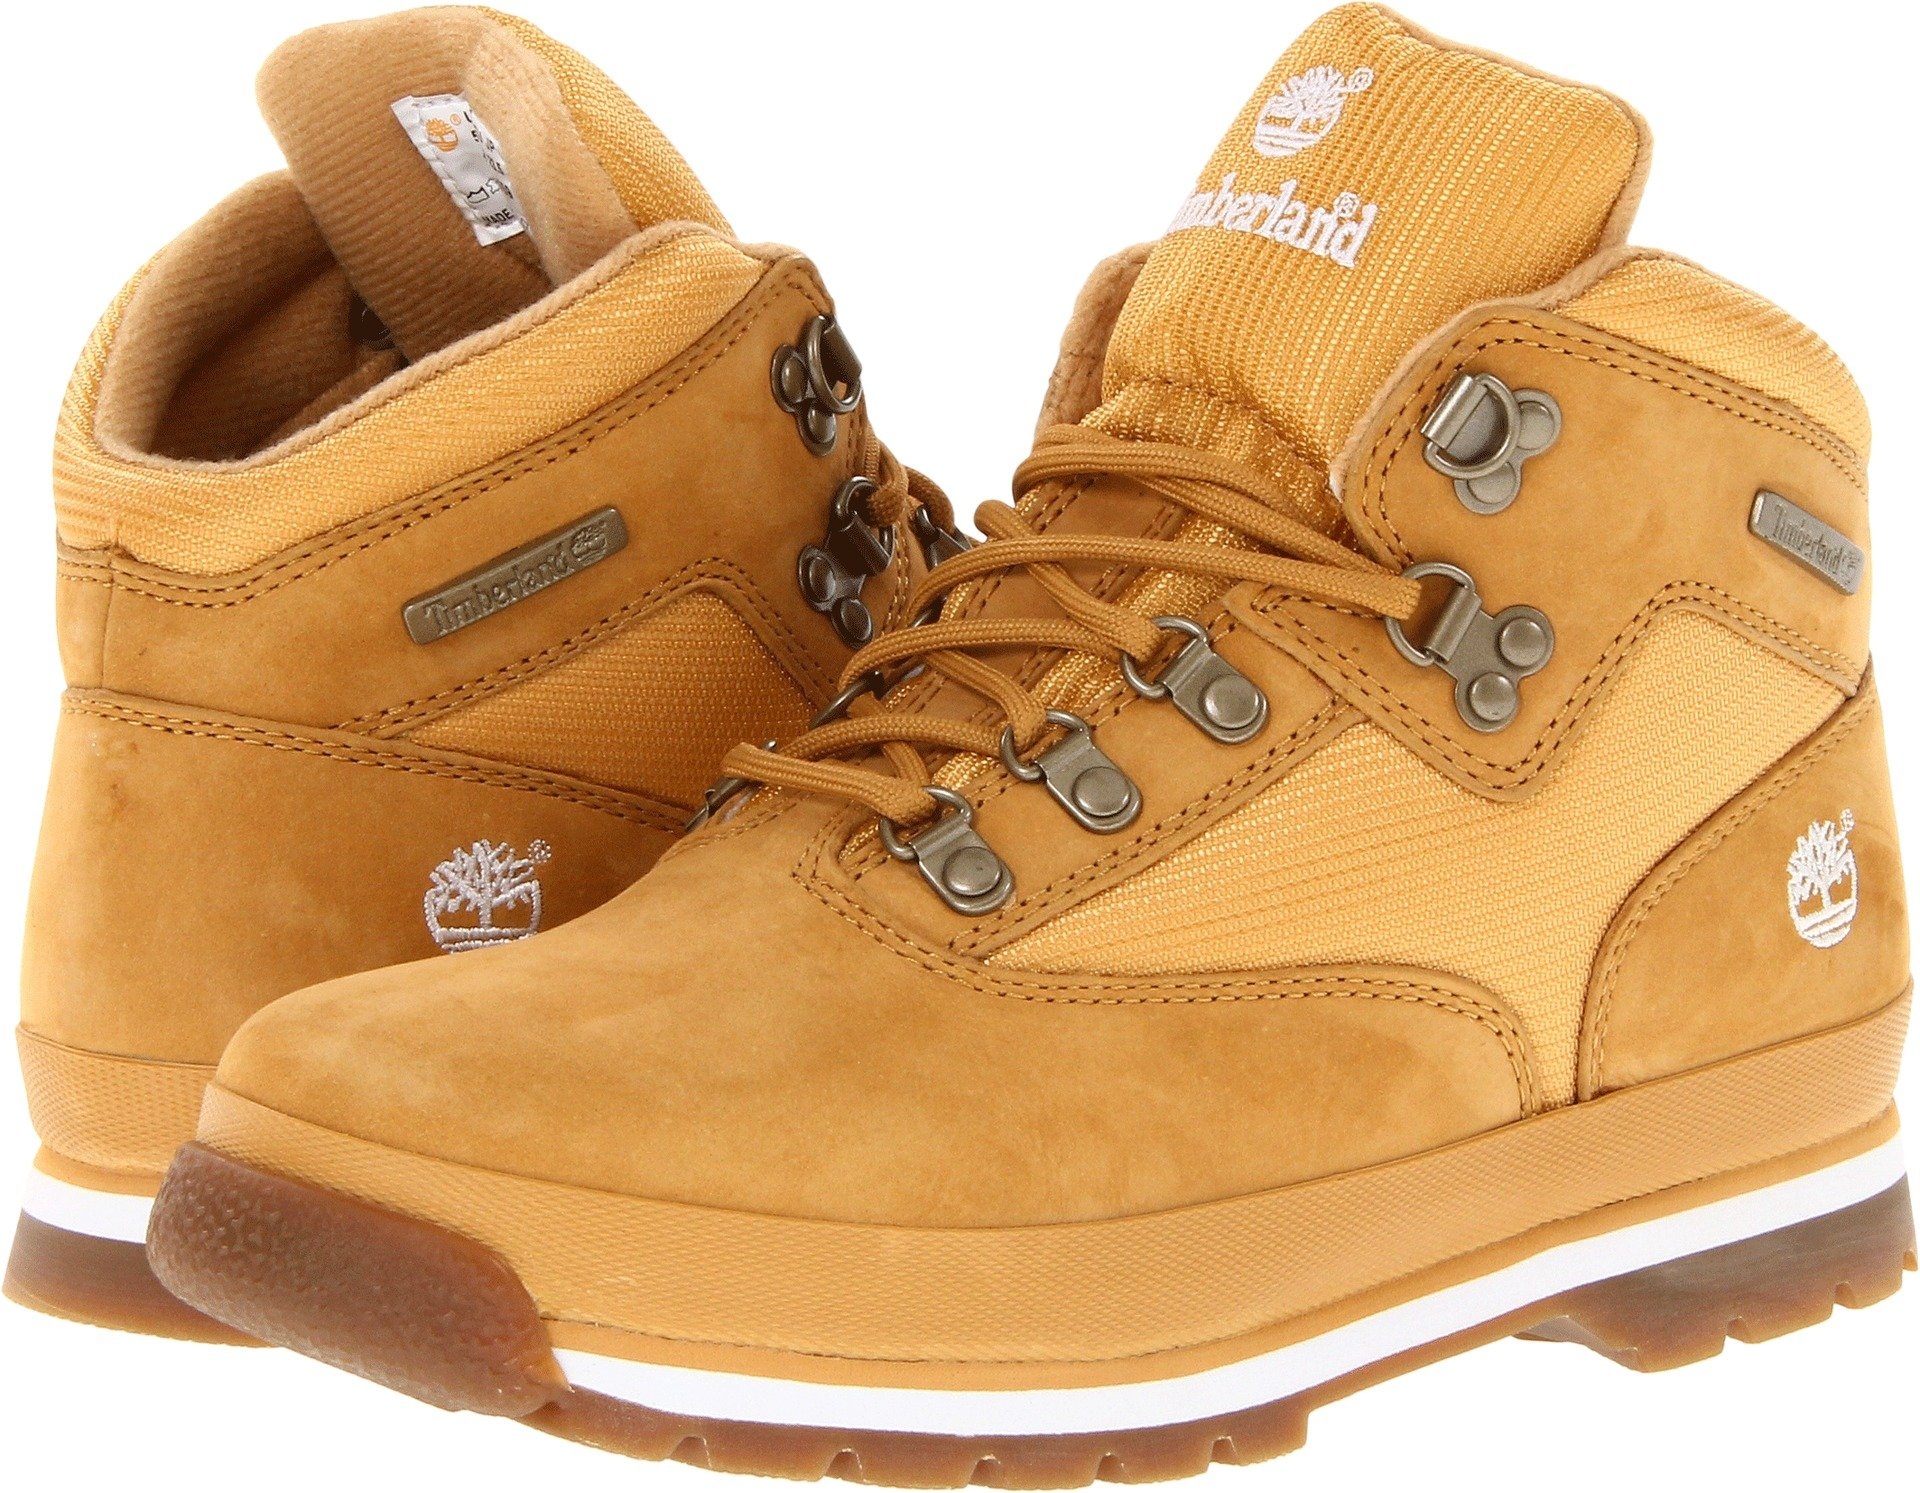 Timberland Boy's EURO Hiker Mid Fabric and Leather Grade School Wheat 7 M